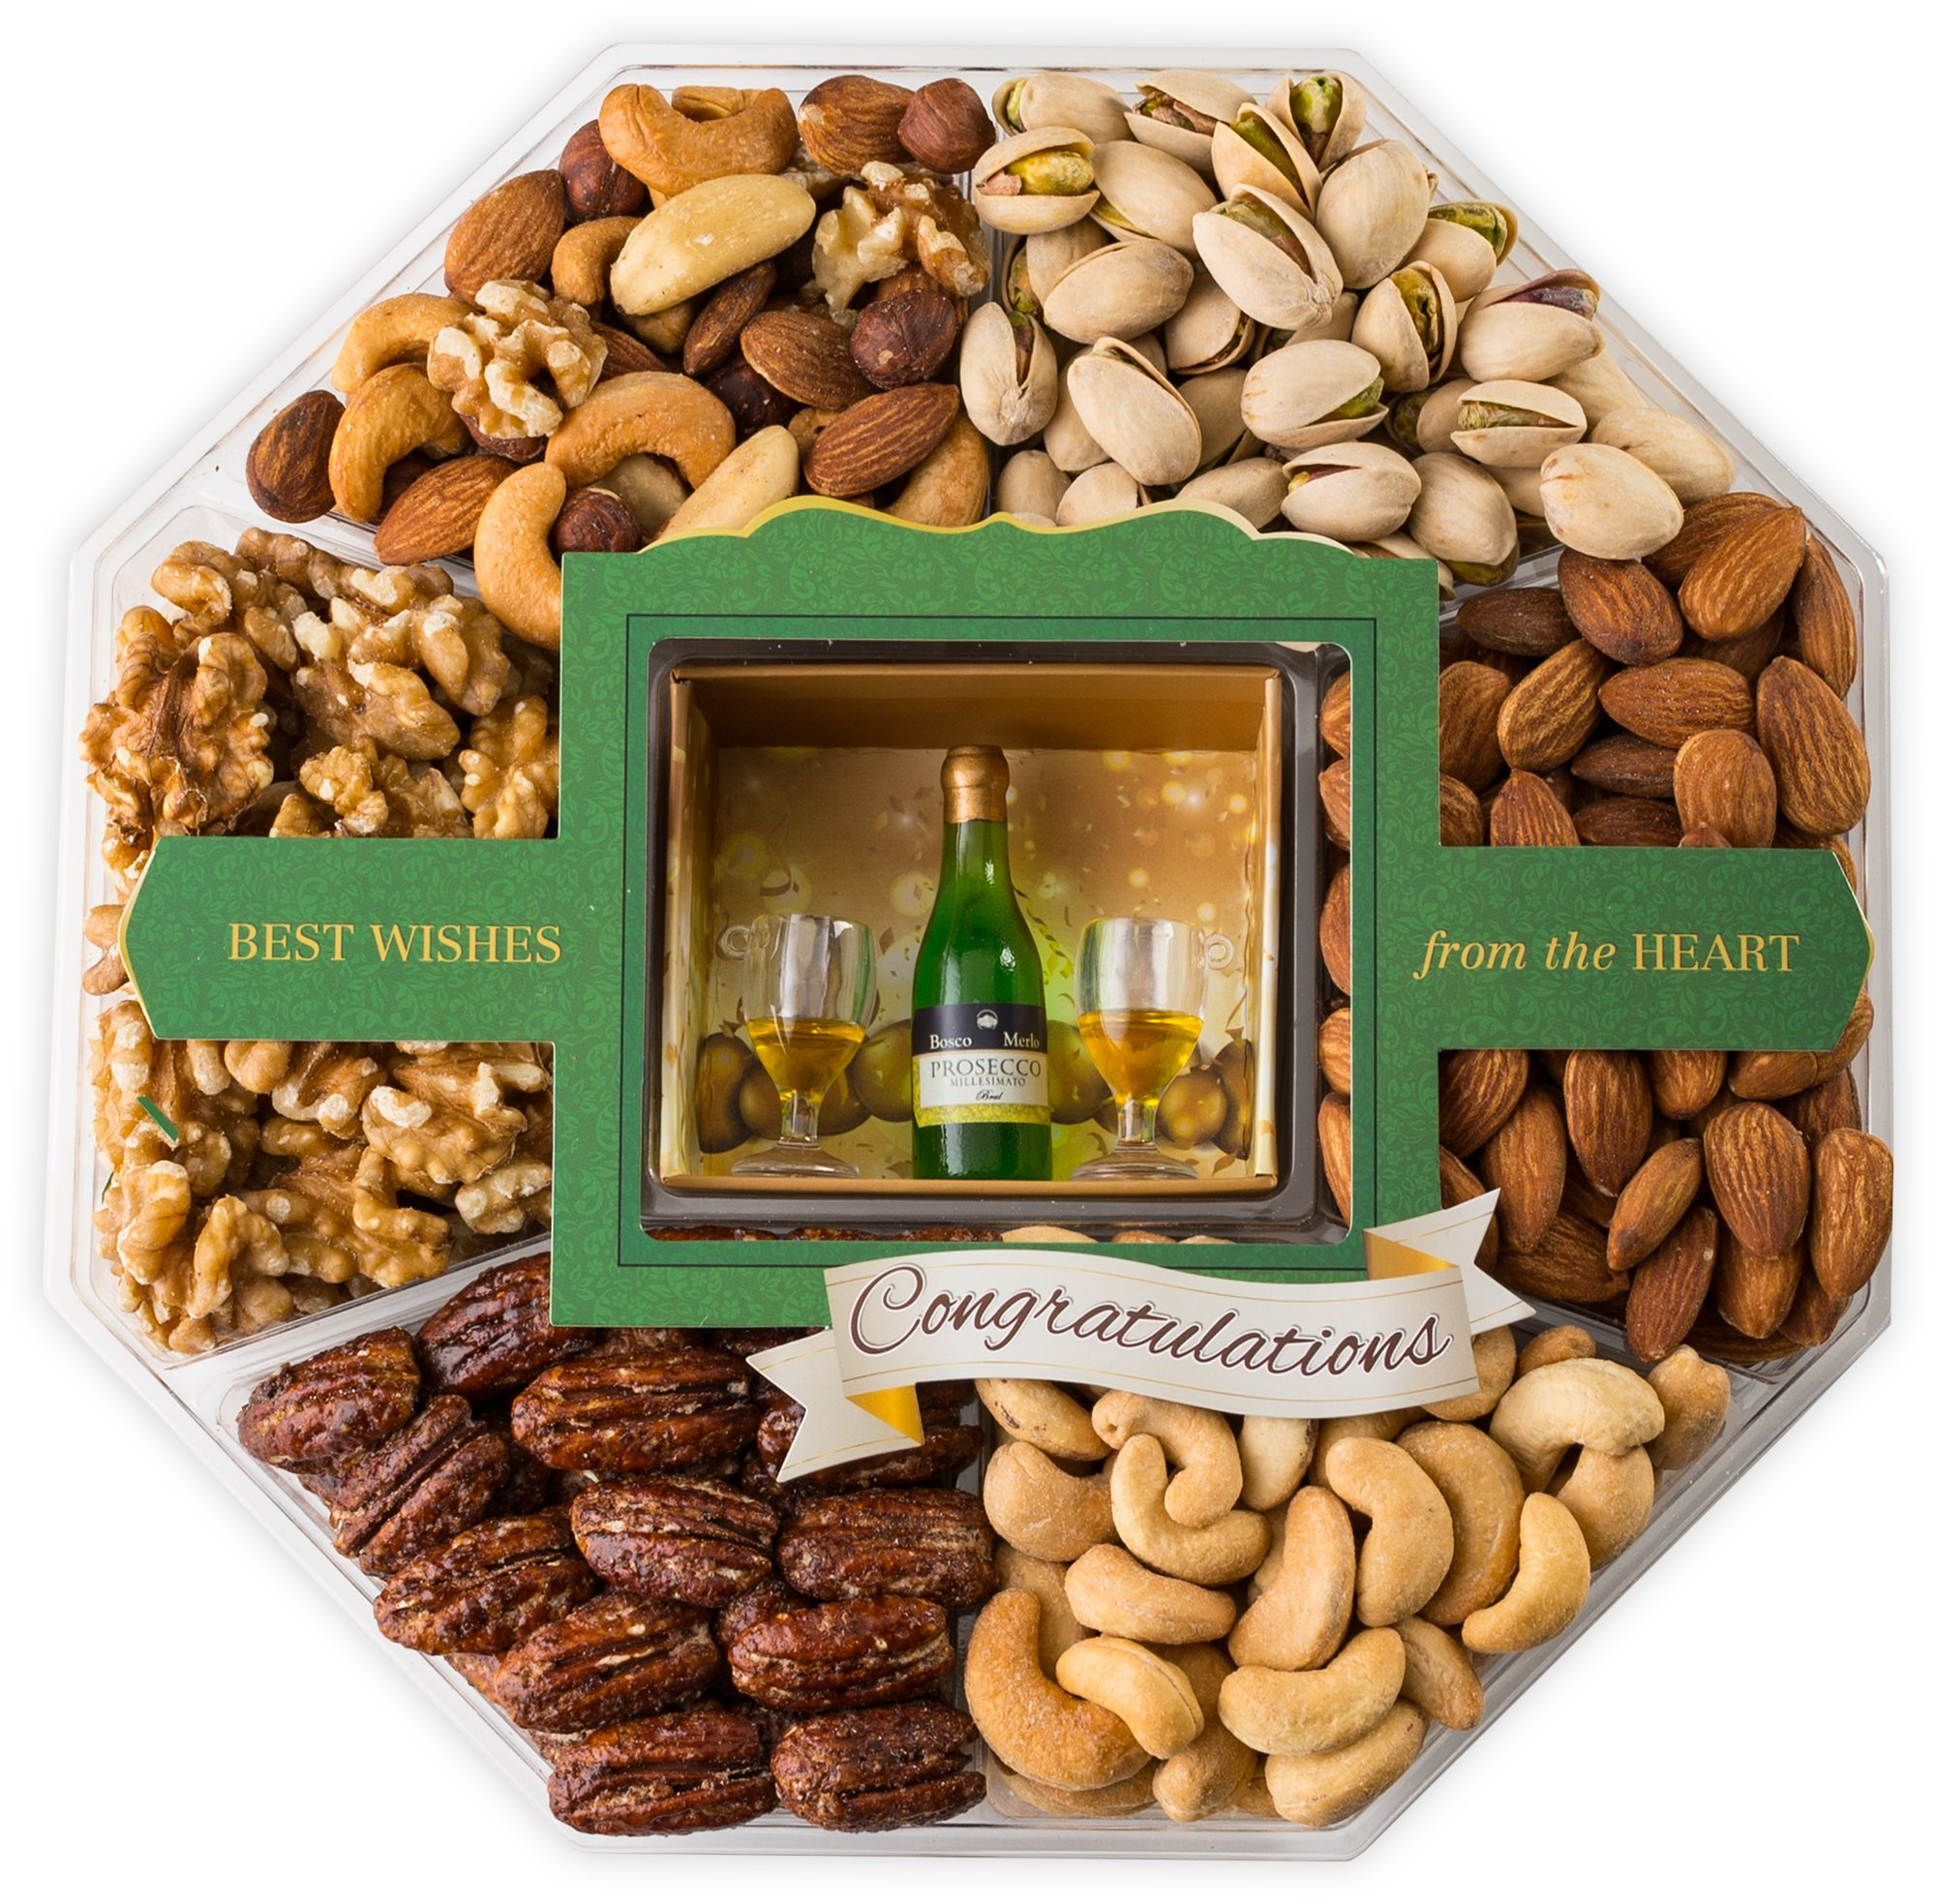 LARGE 6 Sectioned Congratulations Gourmet Food Gift Basket – Contains a Fine Assortment of Fresh Almonds, Pistachios, Cashews and More in an Stylish 3D Gift Container. Great Gift Idea! (Mini Wishes) by Mini Wishes